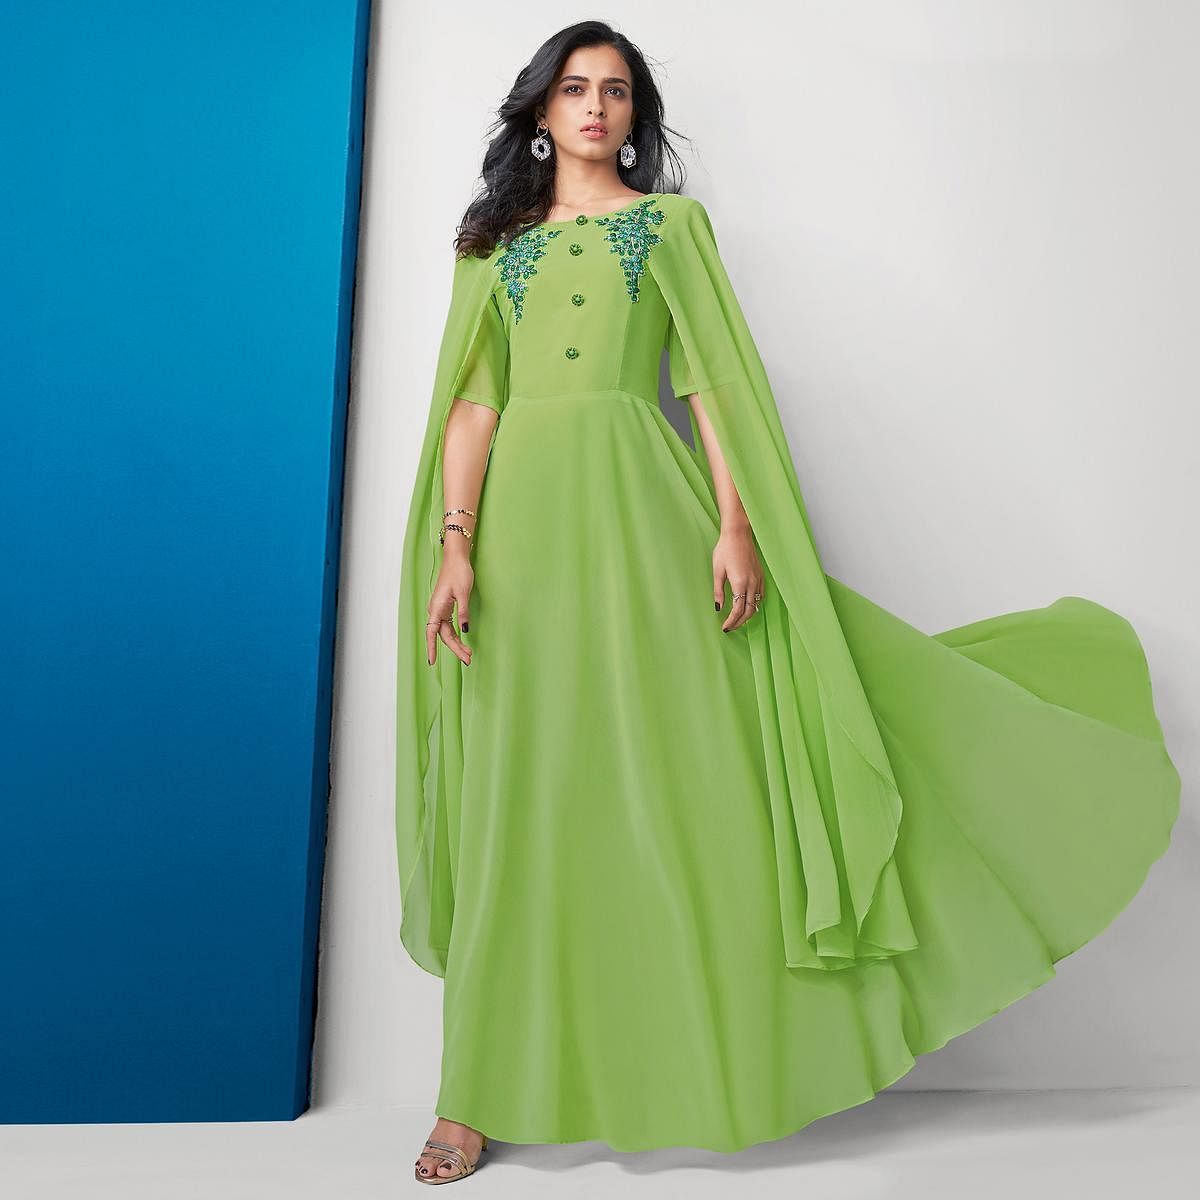 Ravishing Green Colored Partywear Embroidered Georgette Gown